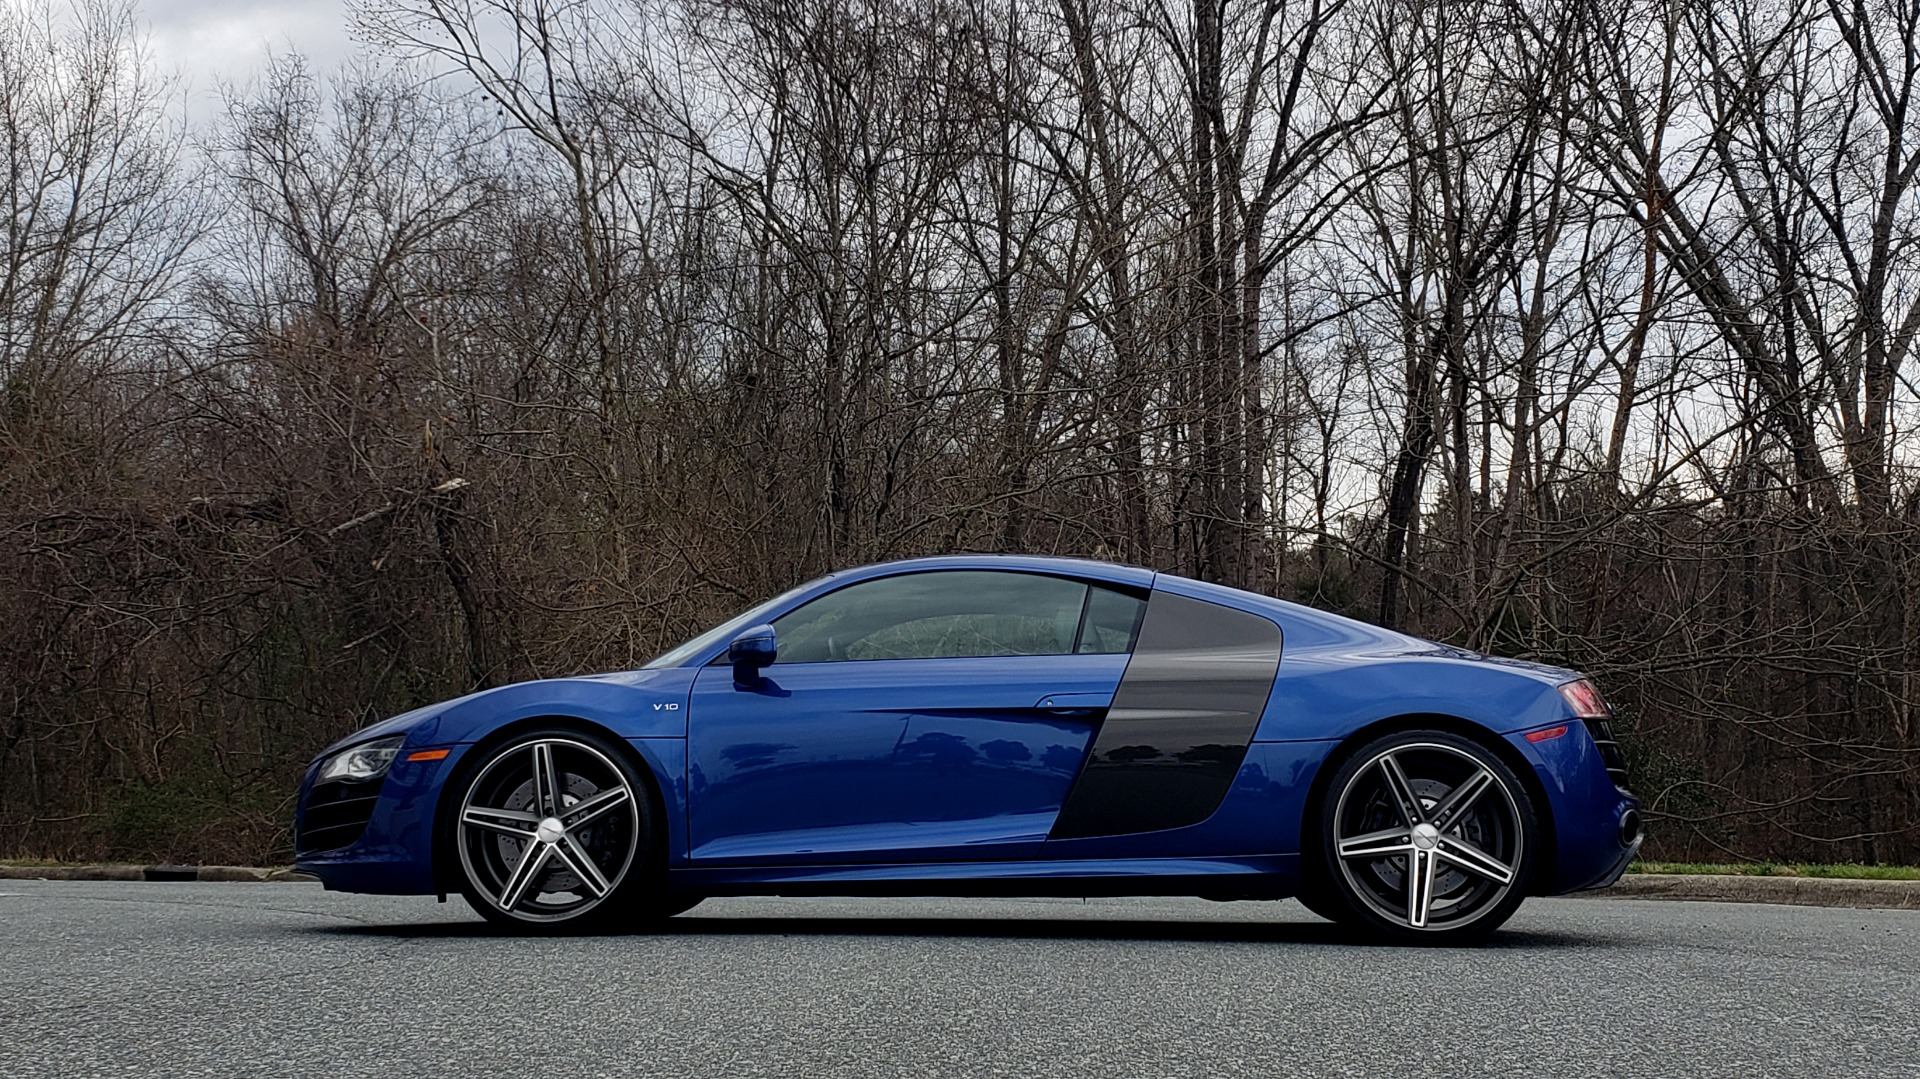 Used 2010 Audi R8 5.2L V10 / AWD / COUPE / NAV / 6-SPD AUTO / CUSTOM WHEELS for sale Sold at Formula Imports in Charlotte NC 28227 3